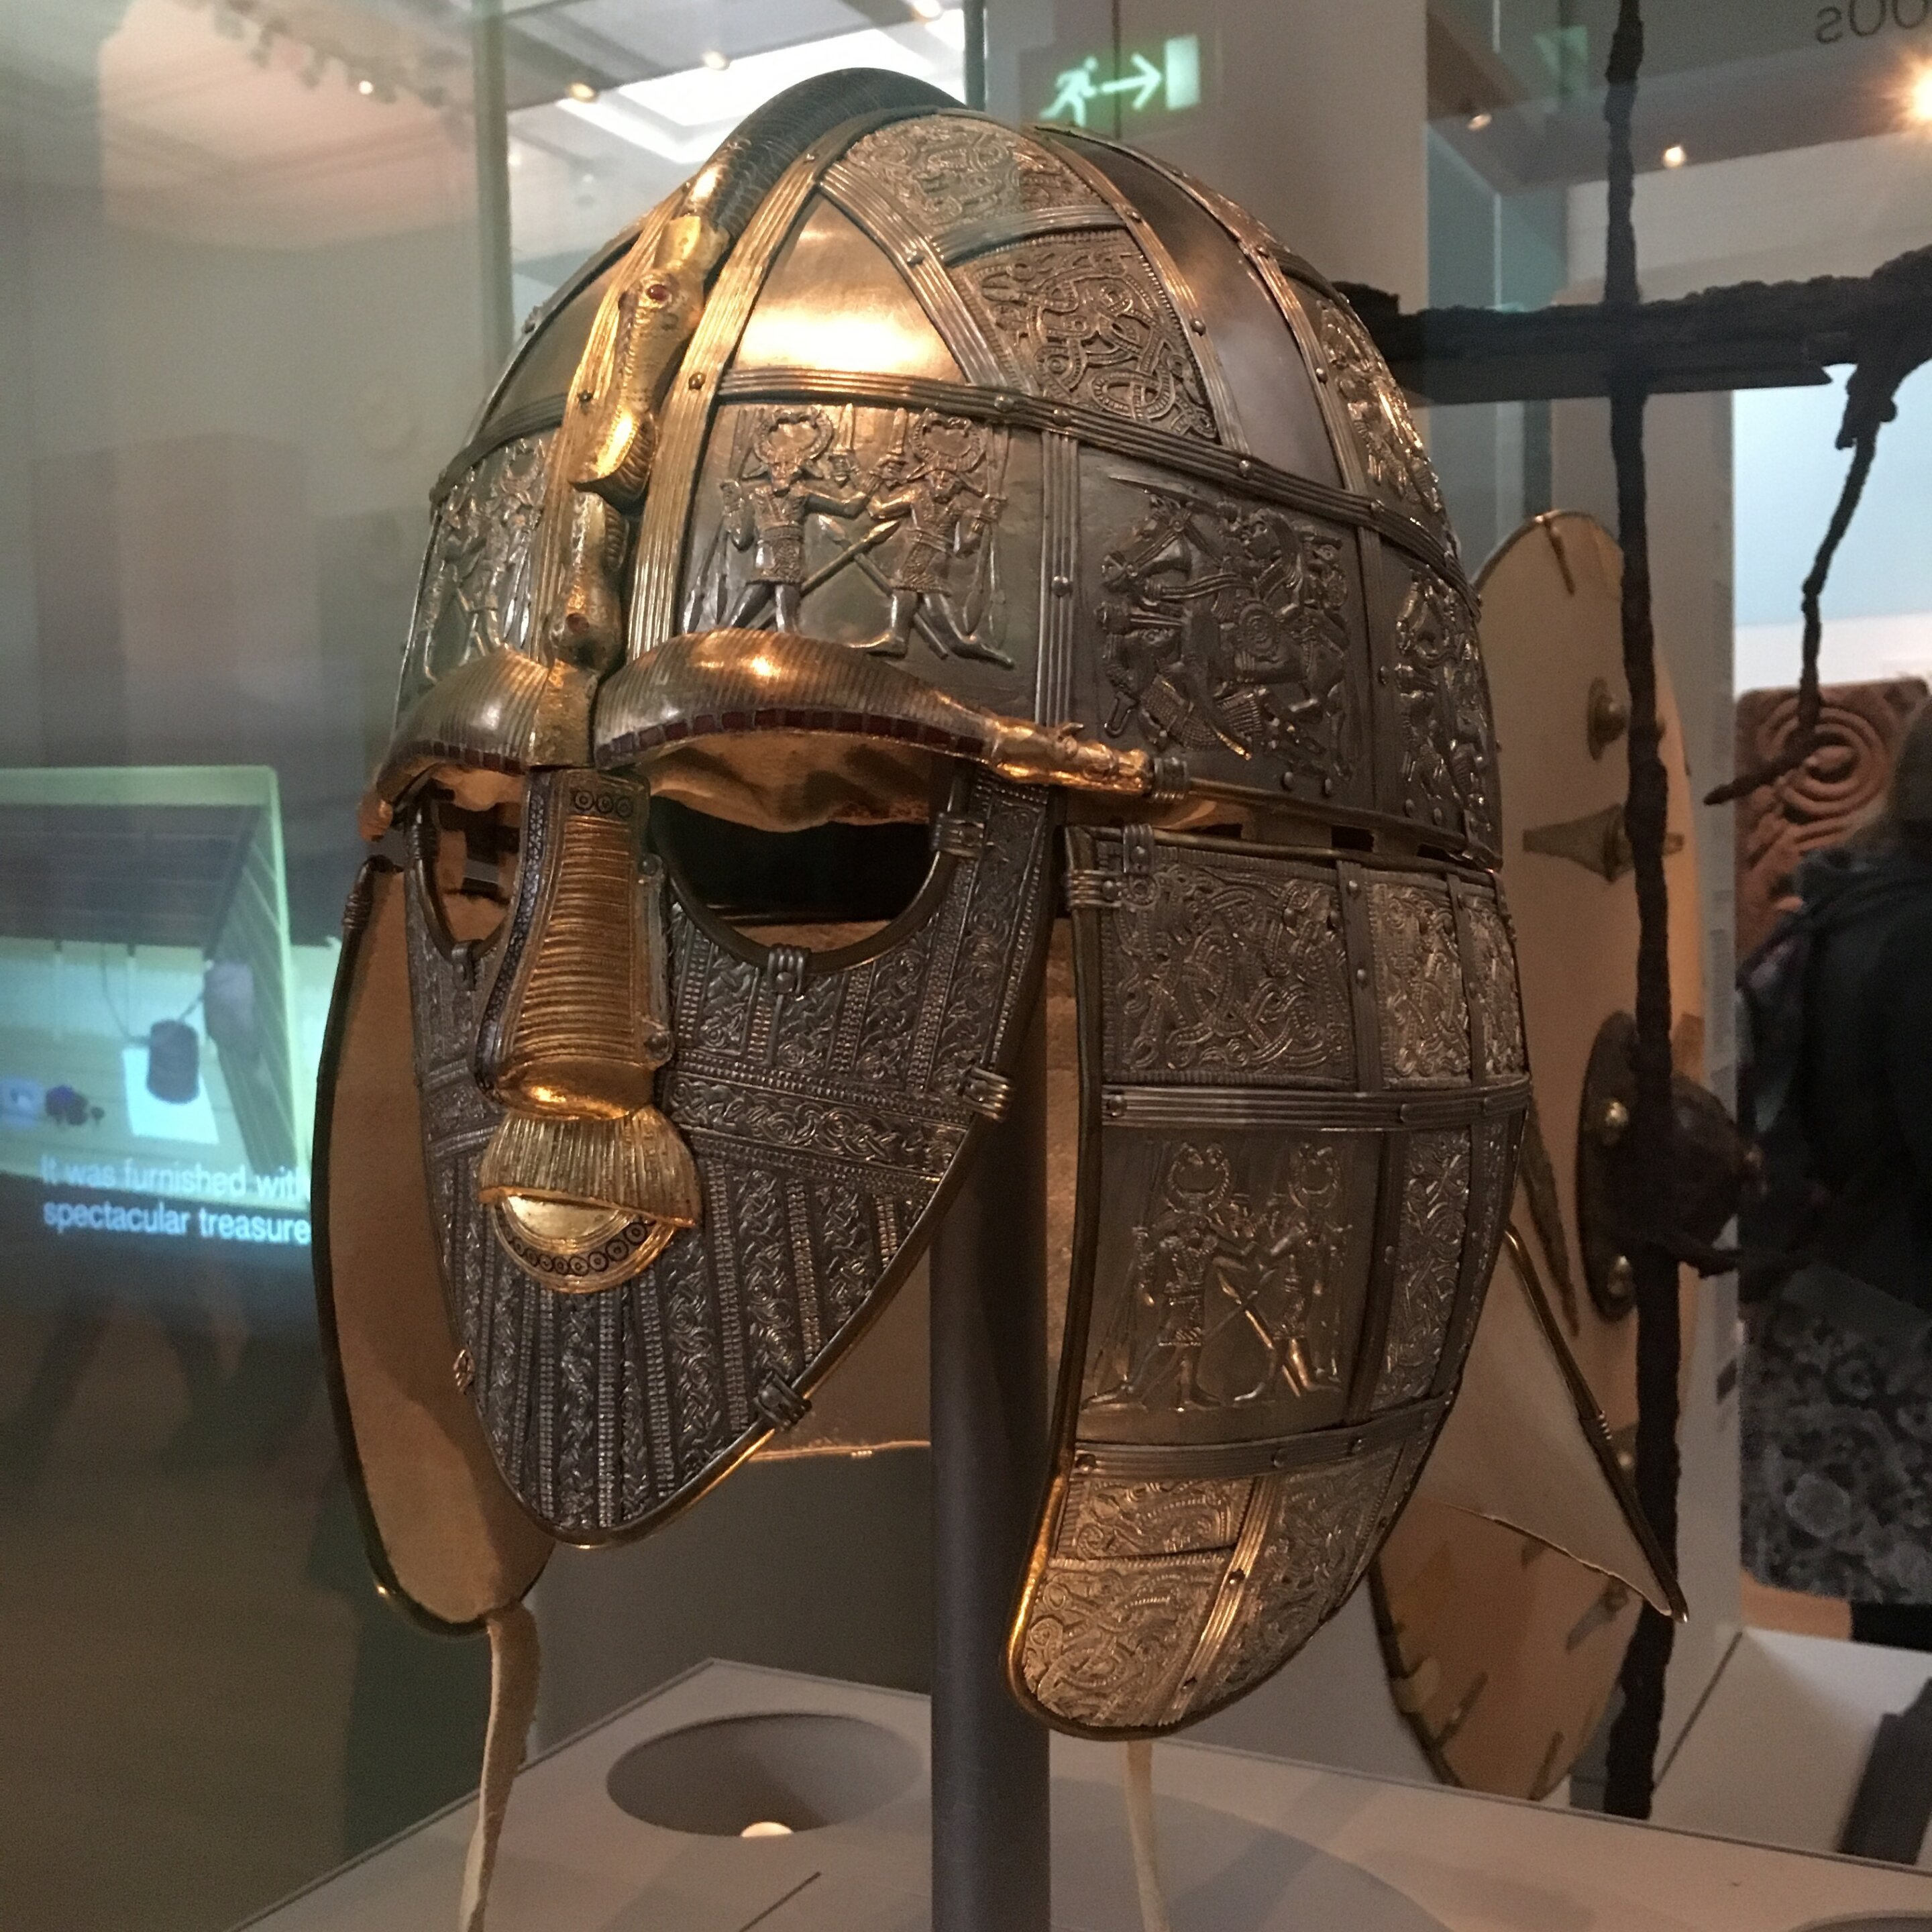 Being Anglo-Saxon was a matter of language and culture, not genetics